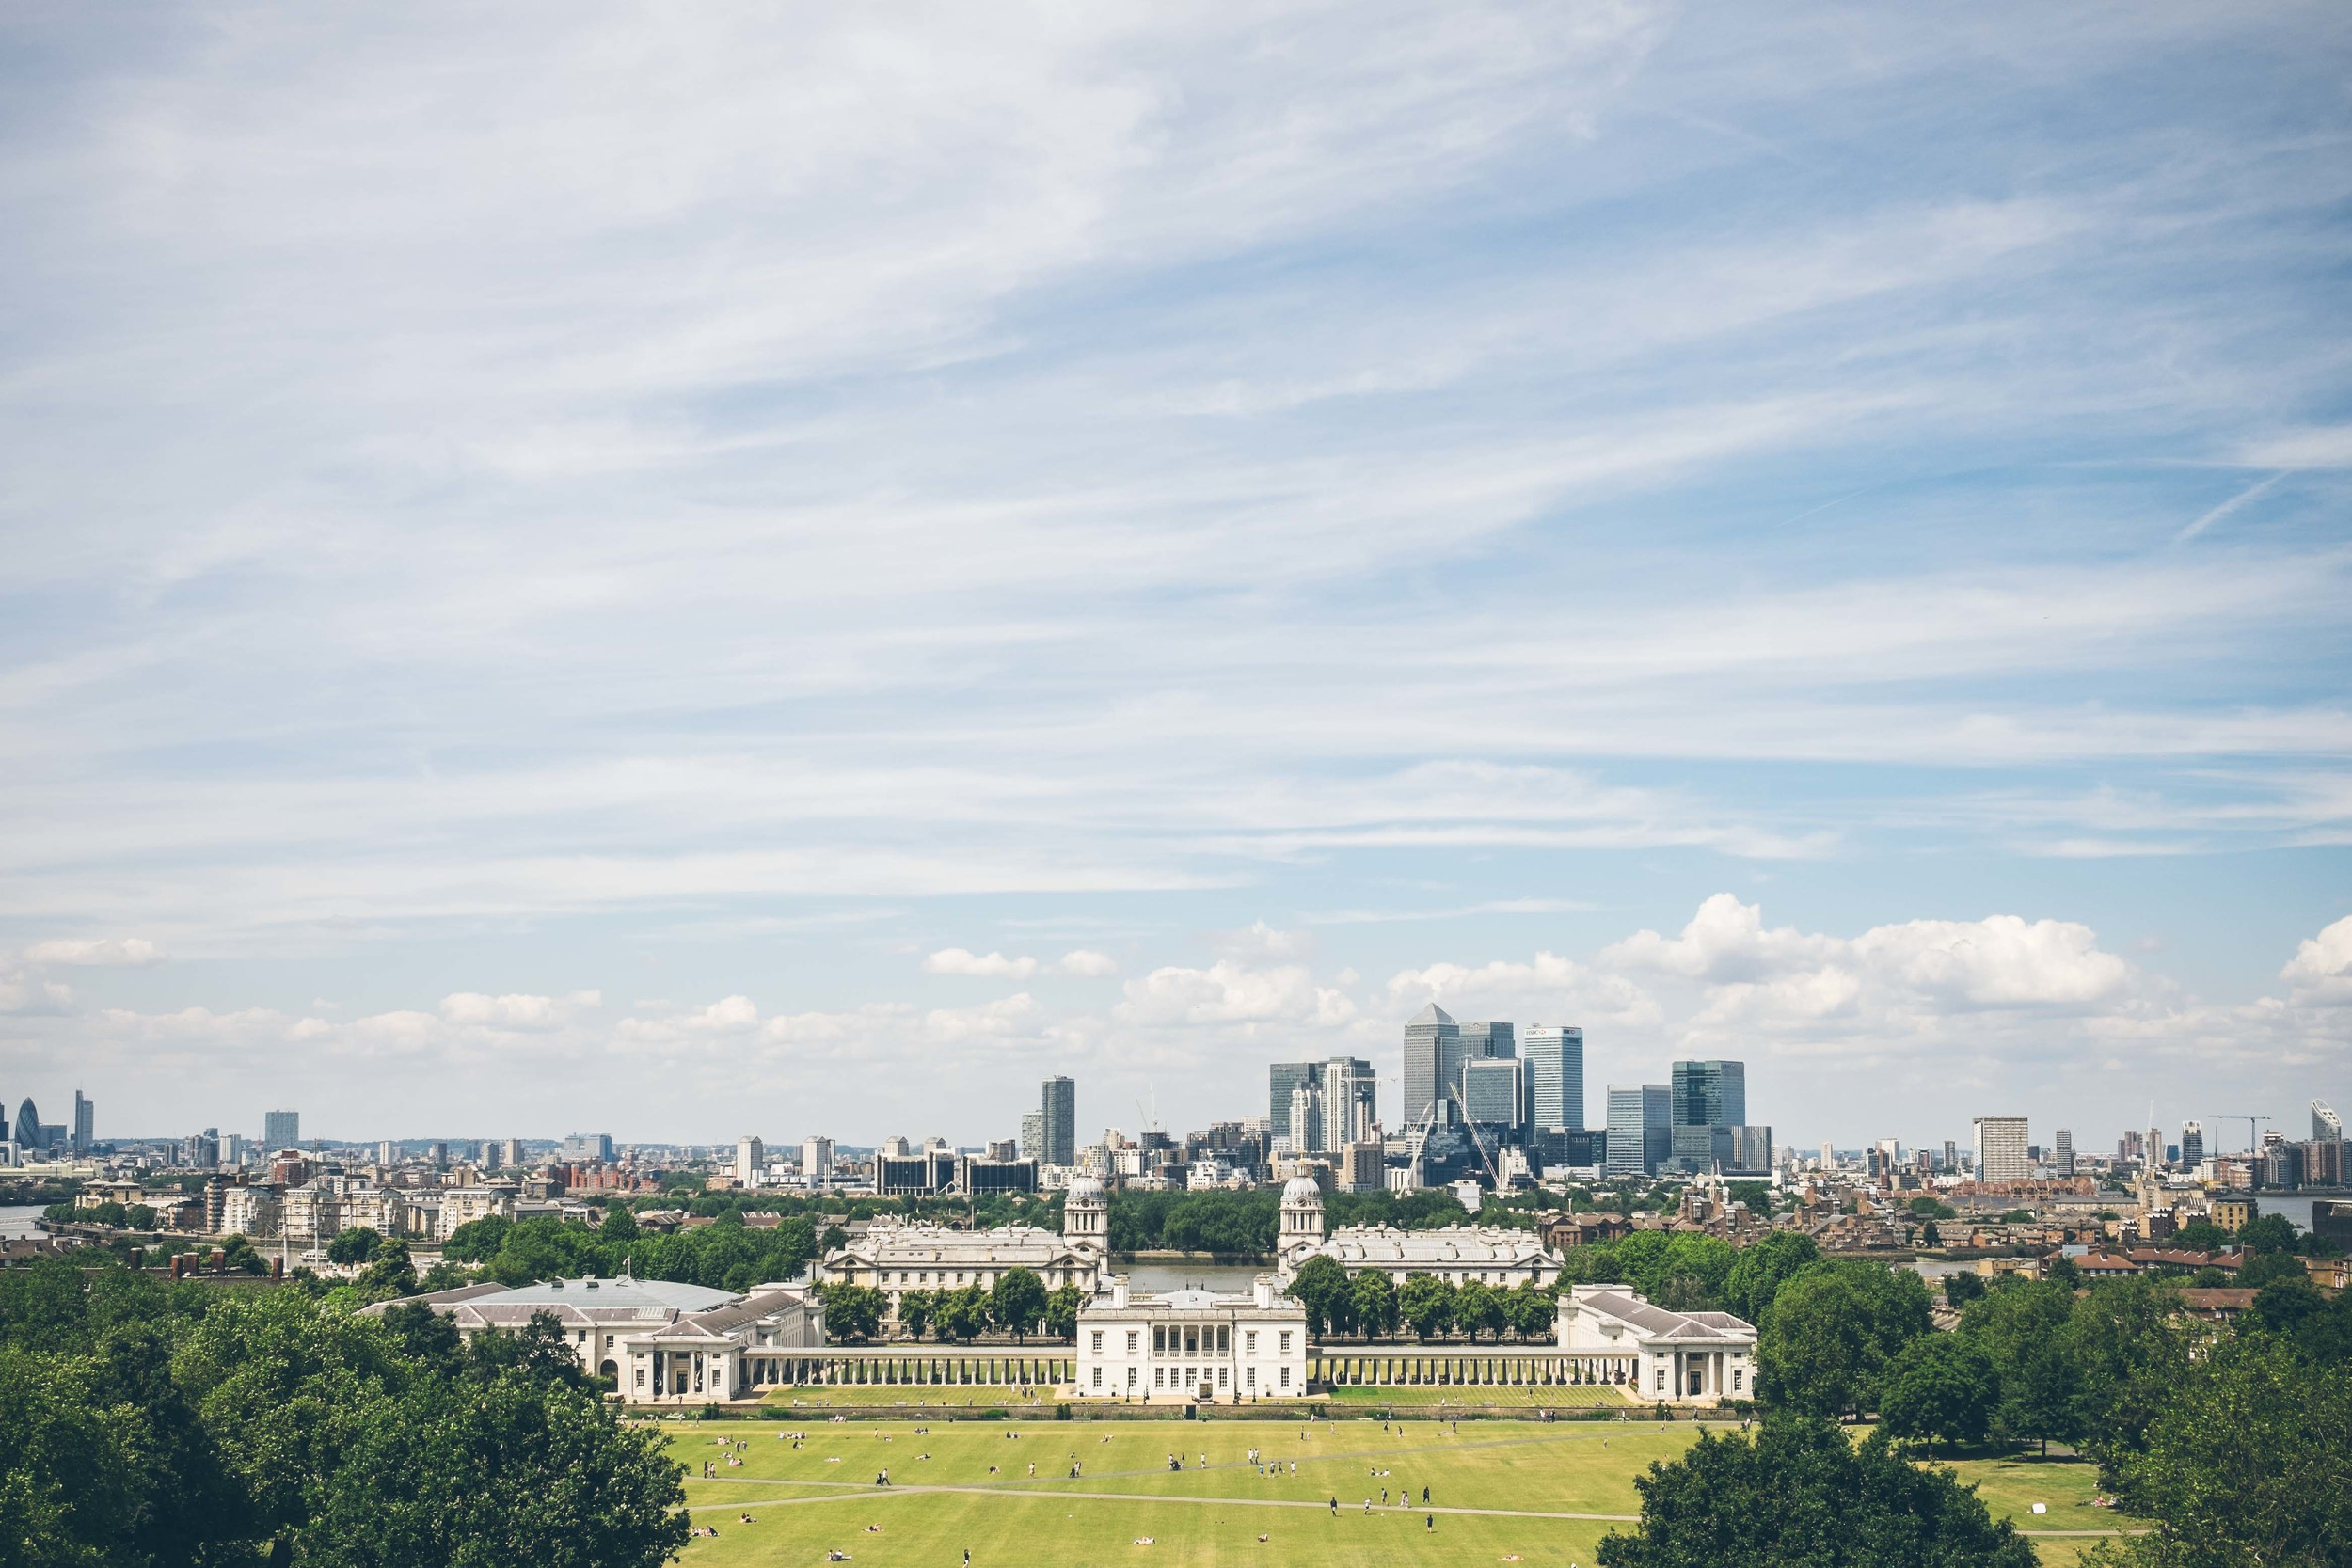 Juxtaposition: my favourite London skyline featuring the Royal Naval College, Greenwich Park in the foreground and Docklands in the background